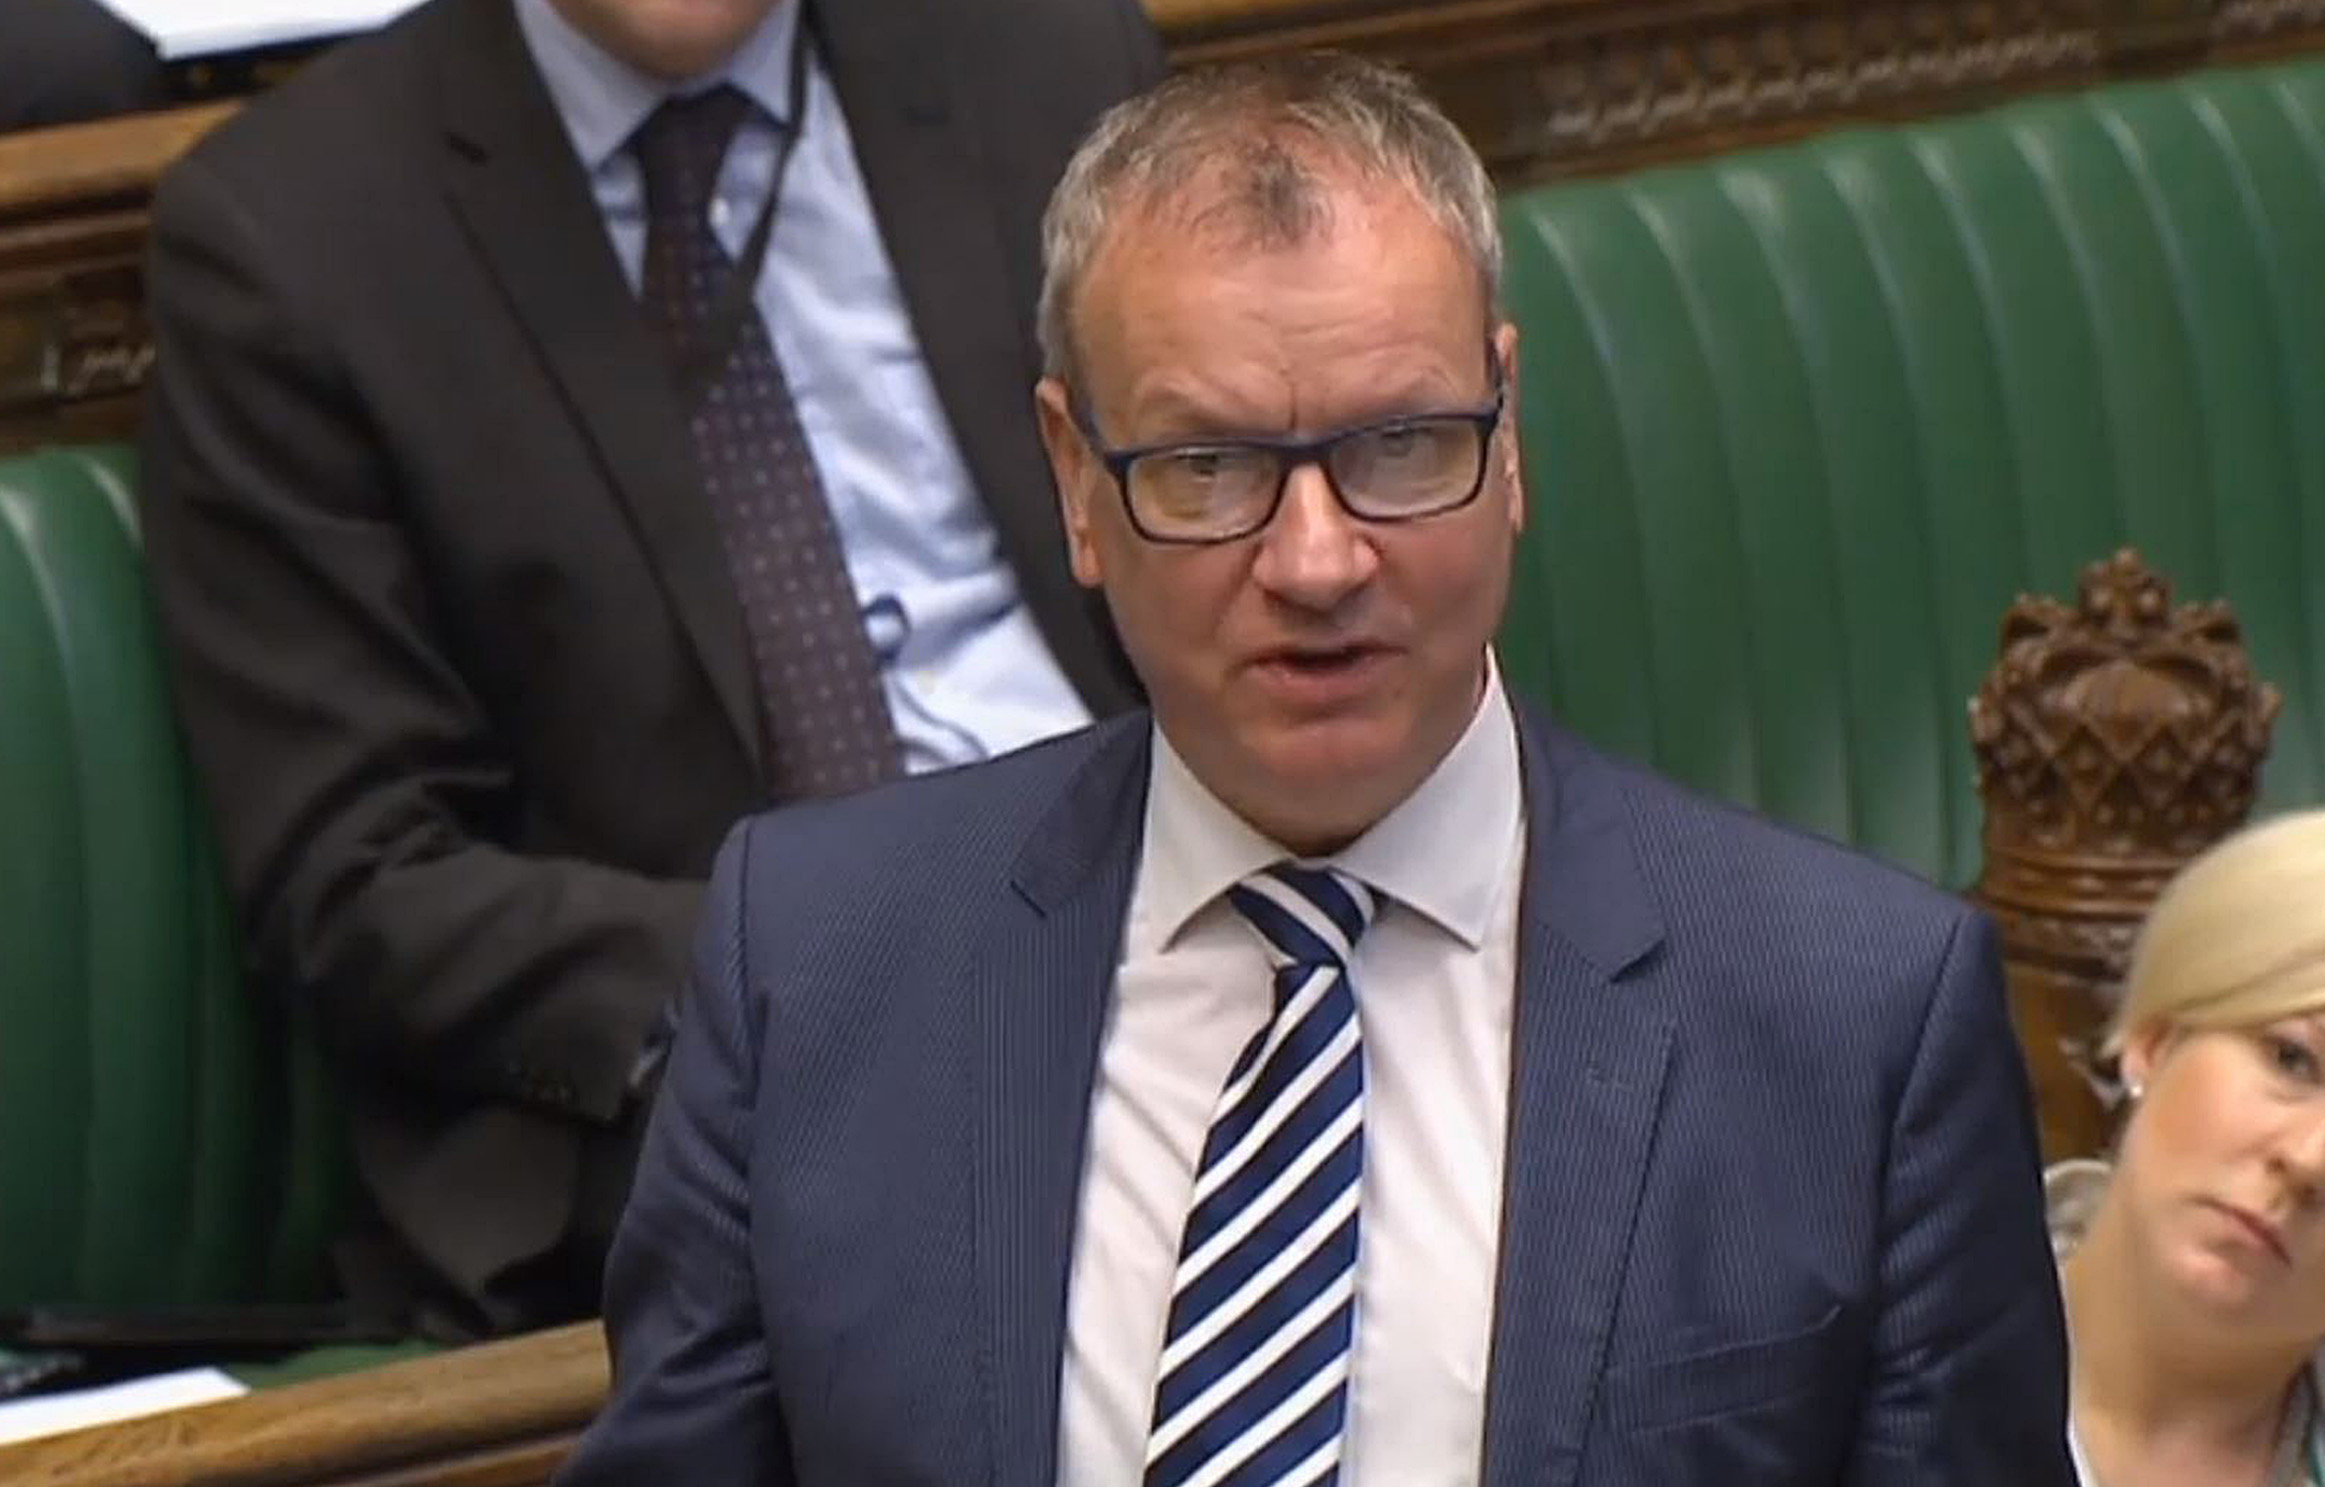 The SNP's Pete Wishart called on the Prime Minister to admit her Chequers deal was 'dead'